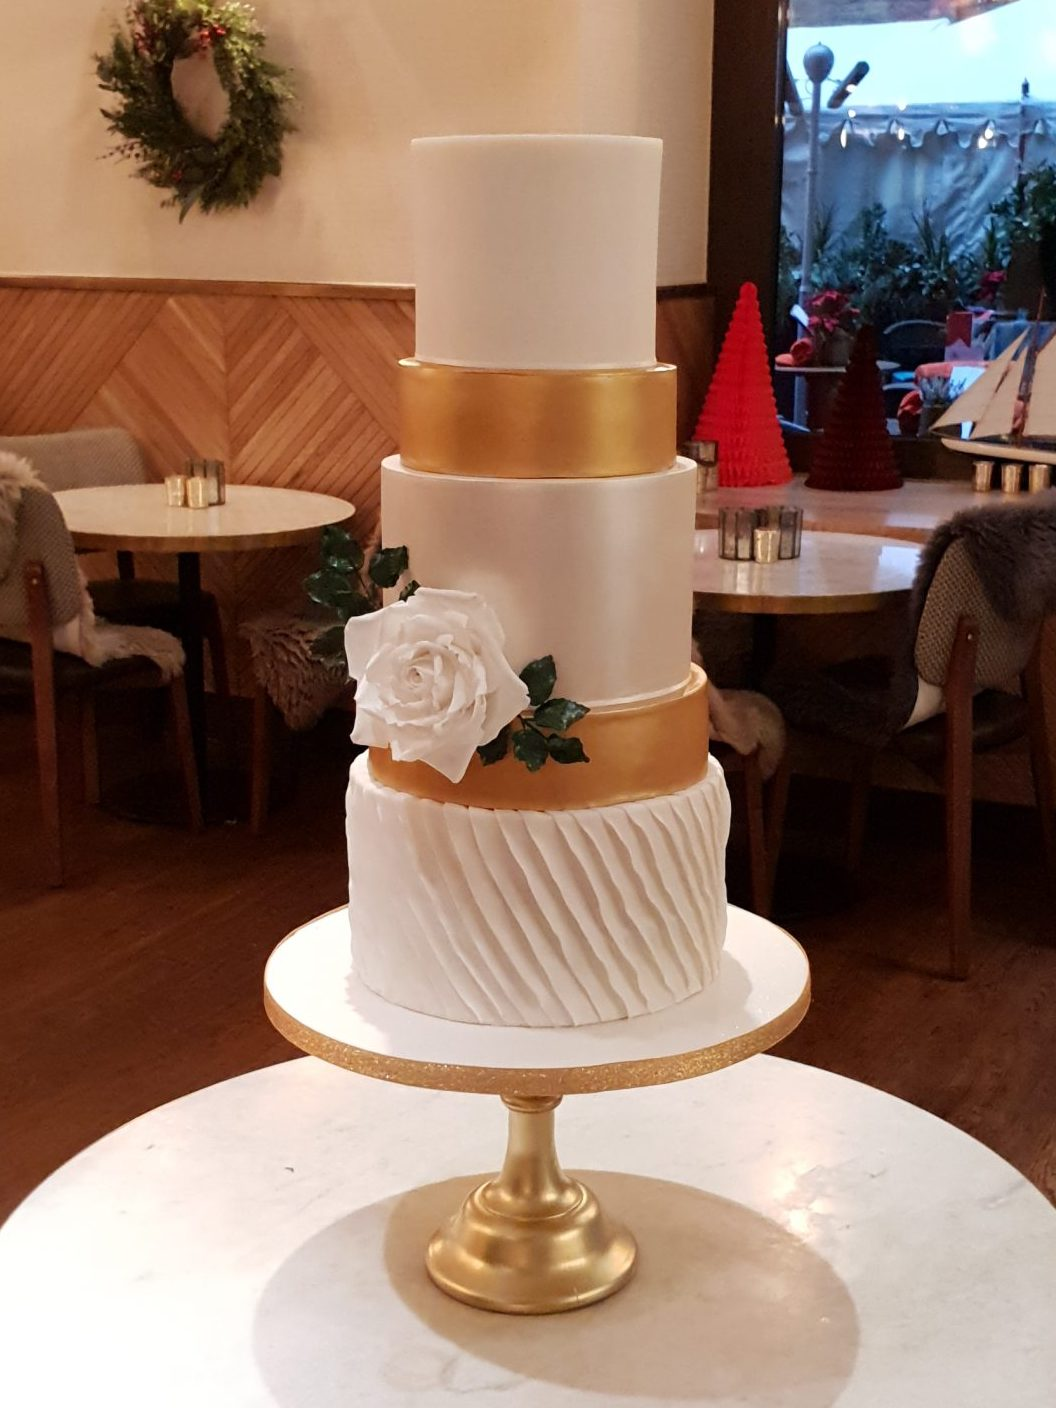 Gold white winter christmas wedding cake white ruffles white sugar rose